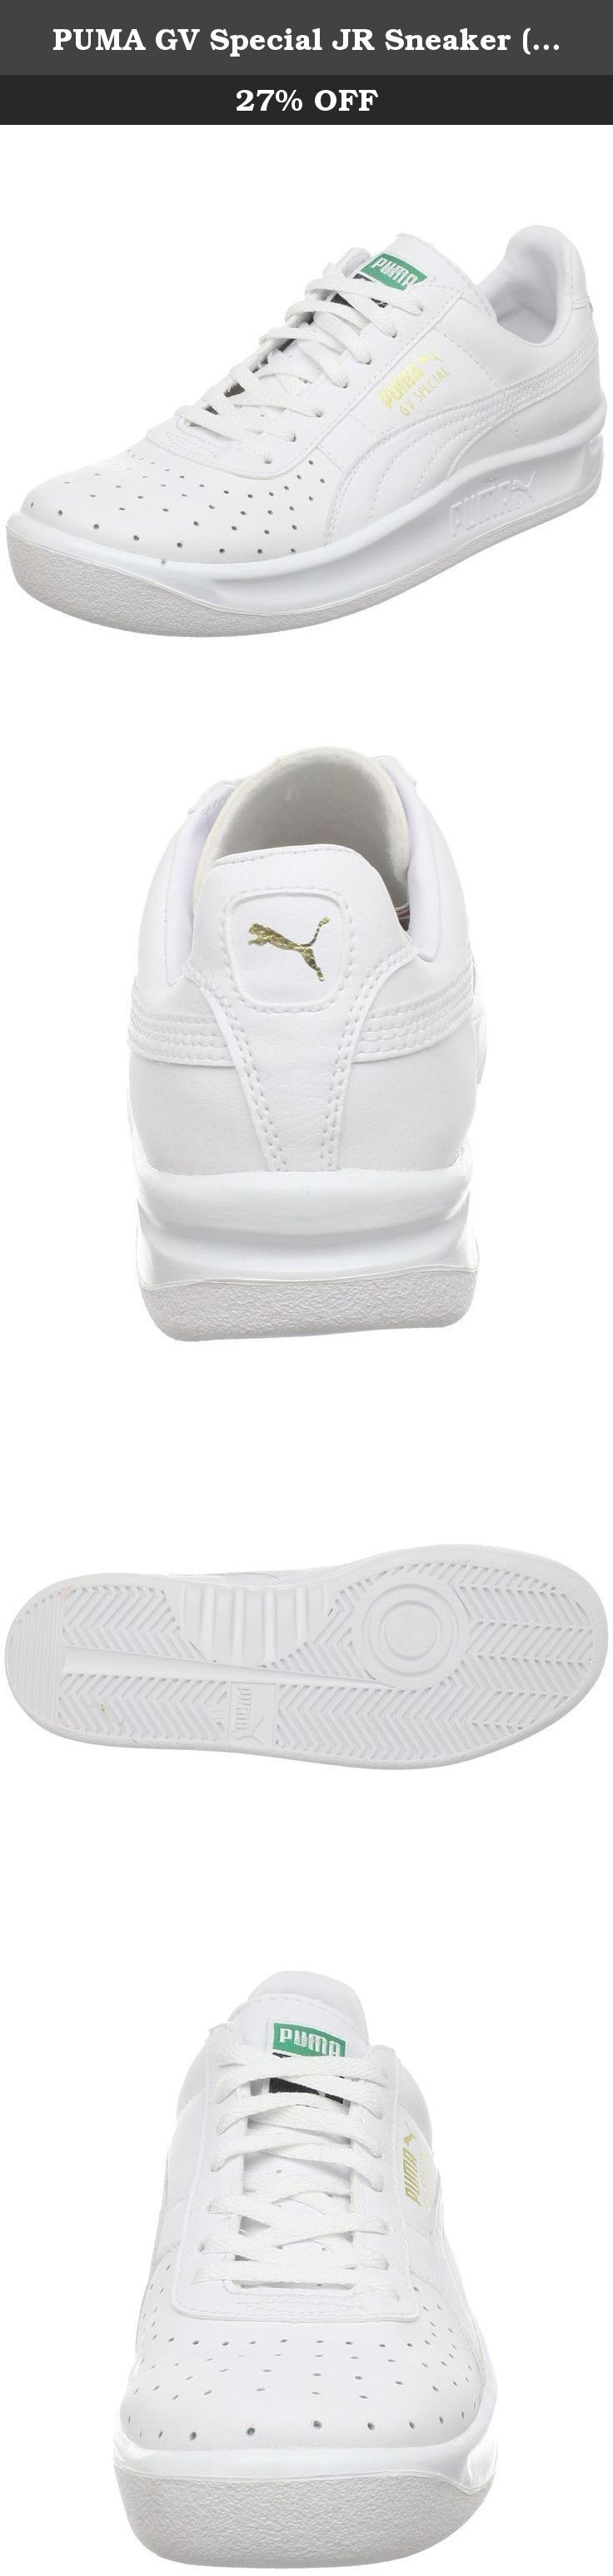 PUMA GV Special JR Sneaker (Little Kid/Big Kid), White/White, 13.5 M US Little Kid. Make sure your young one looks good and feels comfy with the shoes inspired by Argentine tennis legend Guillermo Vilas.